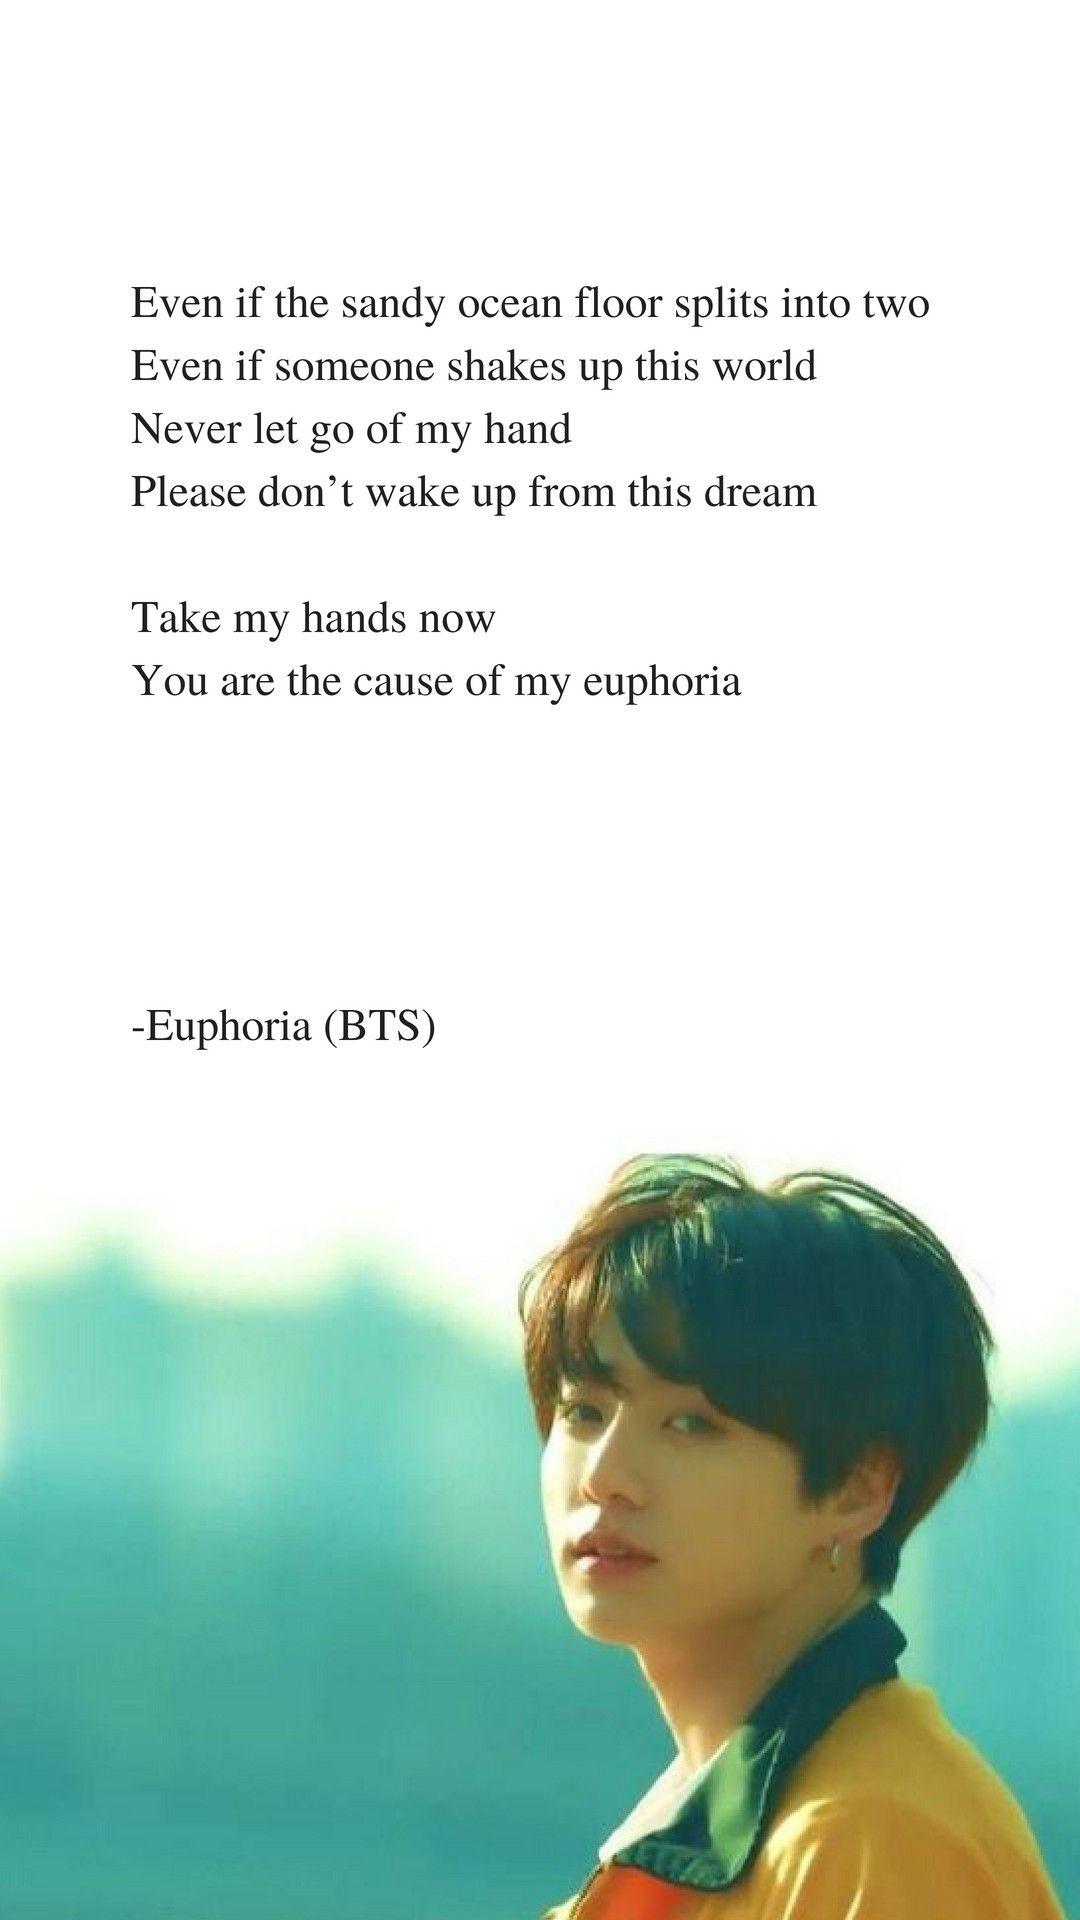 48237781 Euphoria by BTS Jungkook Lyrics wallpaper BTS Lyrics 1080x1920